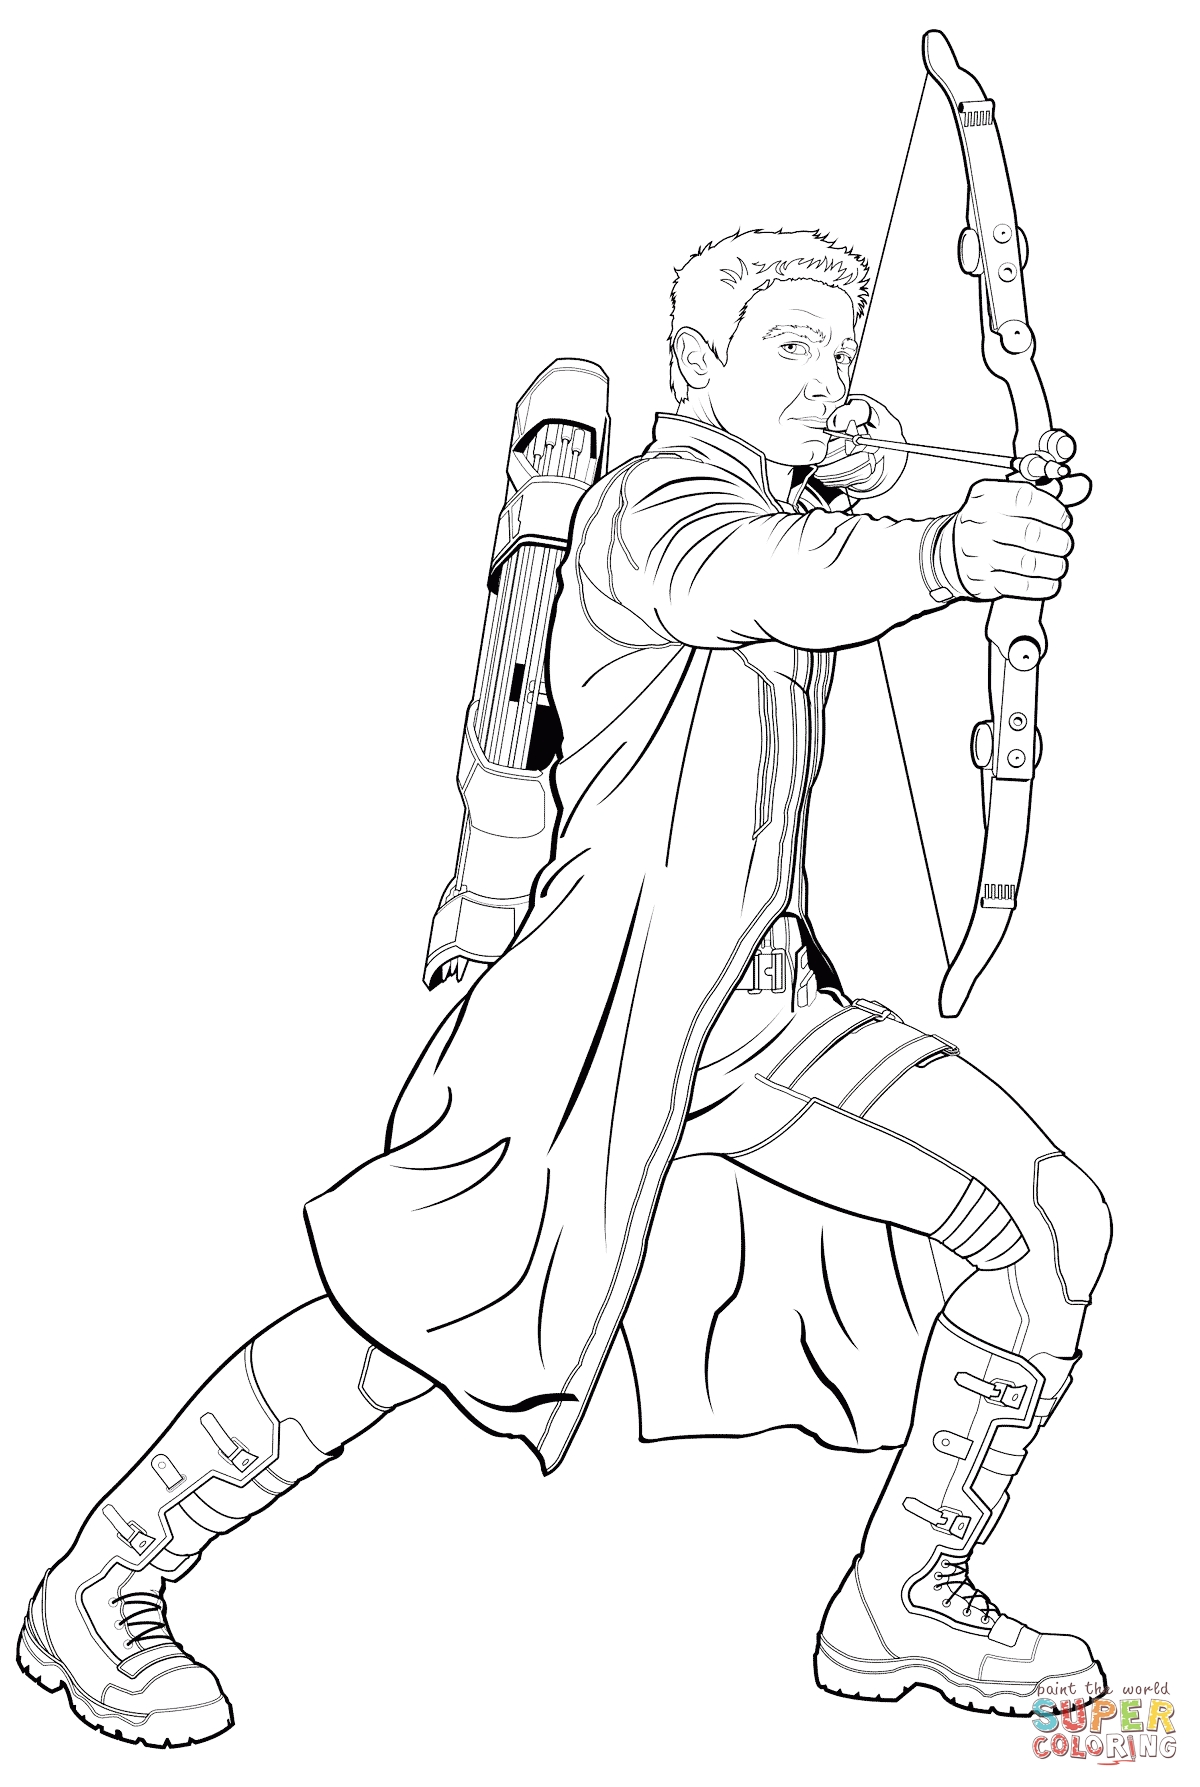 hawkeye coloring pages - avengers hawkeye